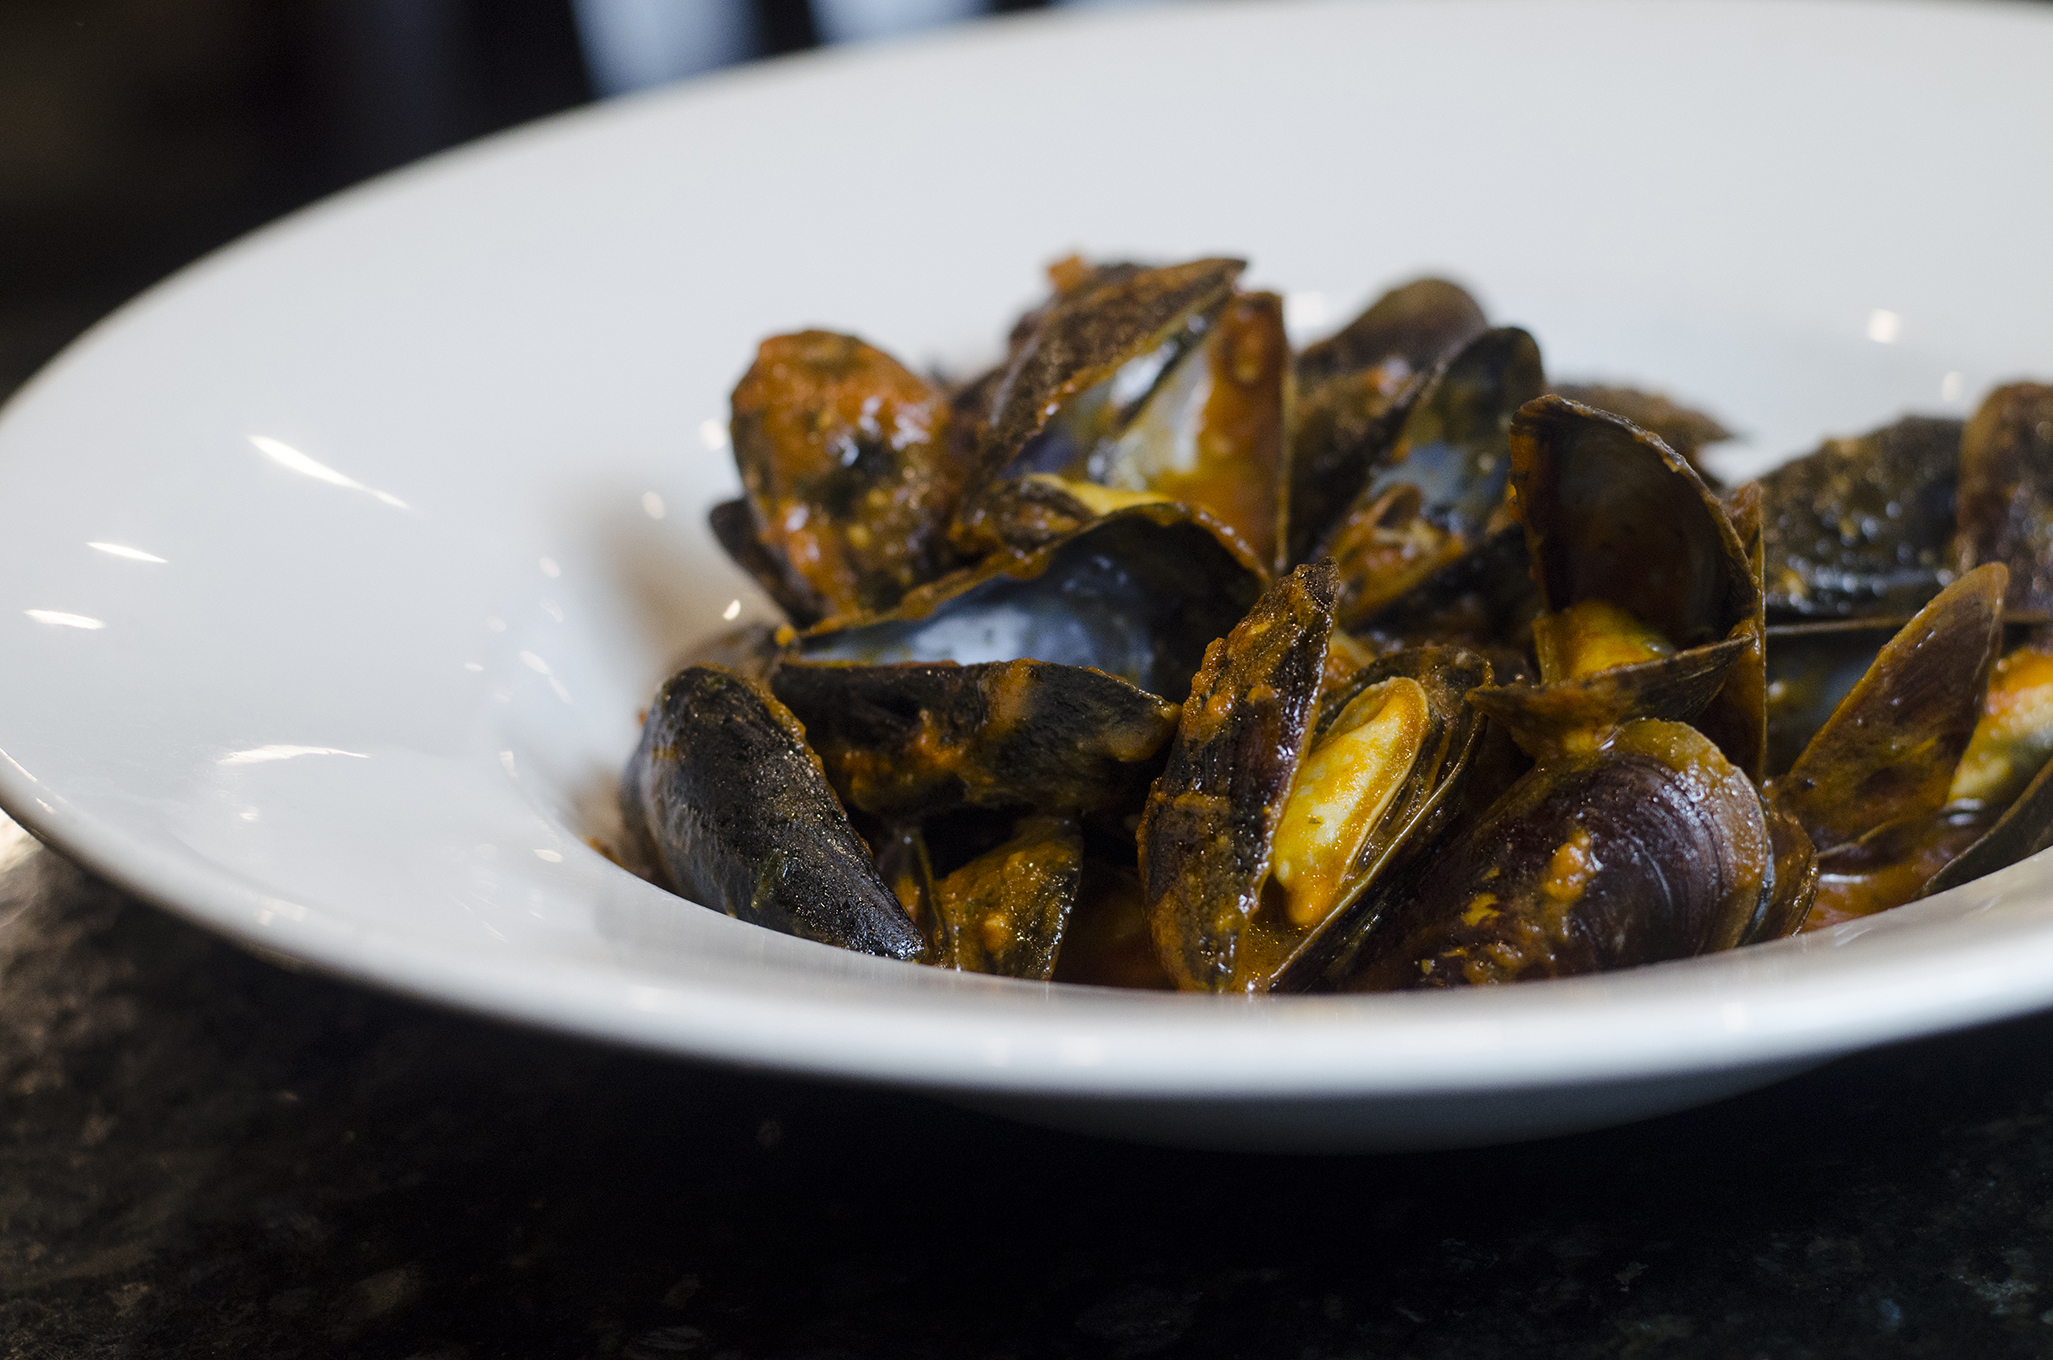 Fresh mussels sautéed in a white wine tomato sauce at Enzo's in Windsor, Ontario.